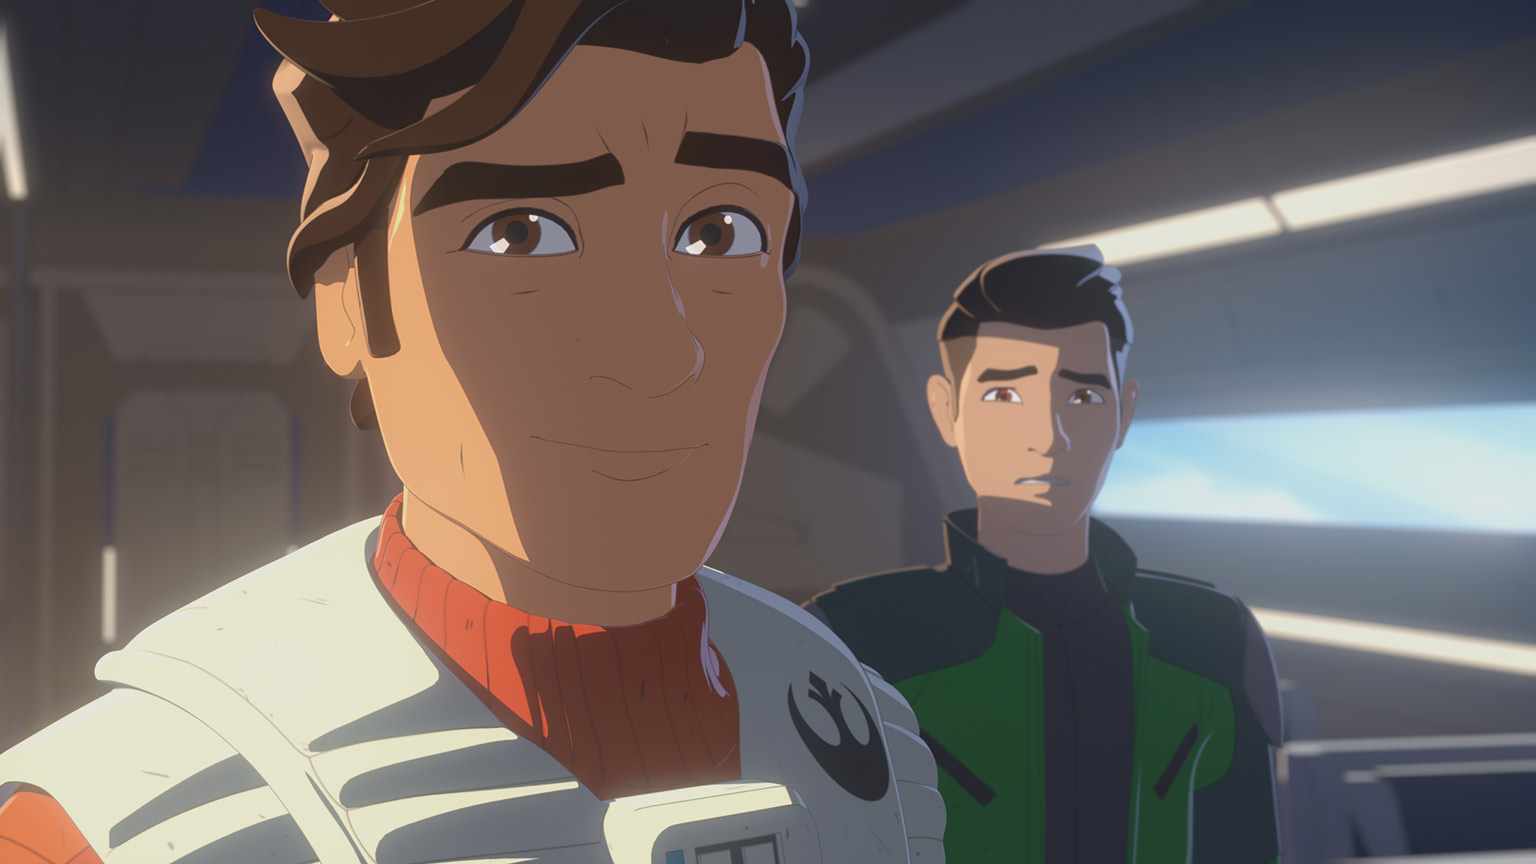 Poe Dameron and Kazuda Xiono aboard a Resistance transport